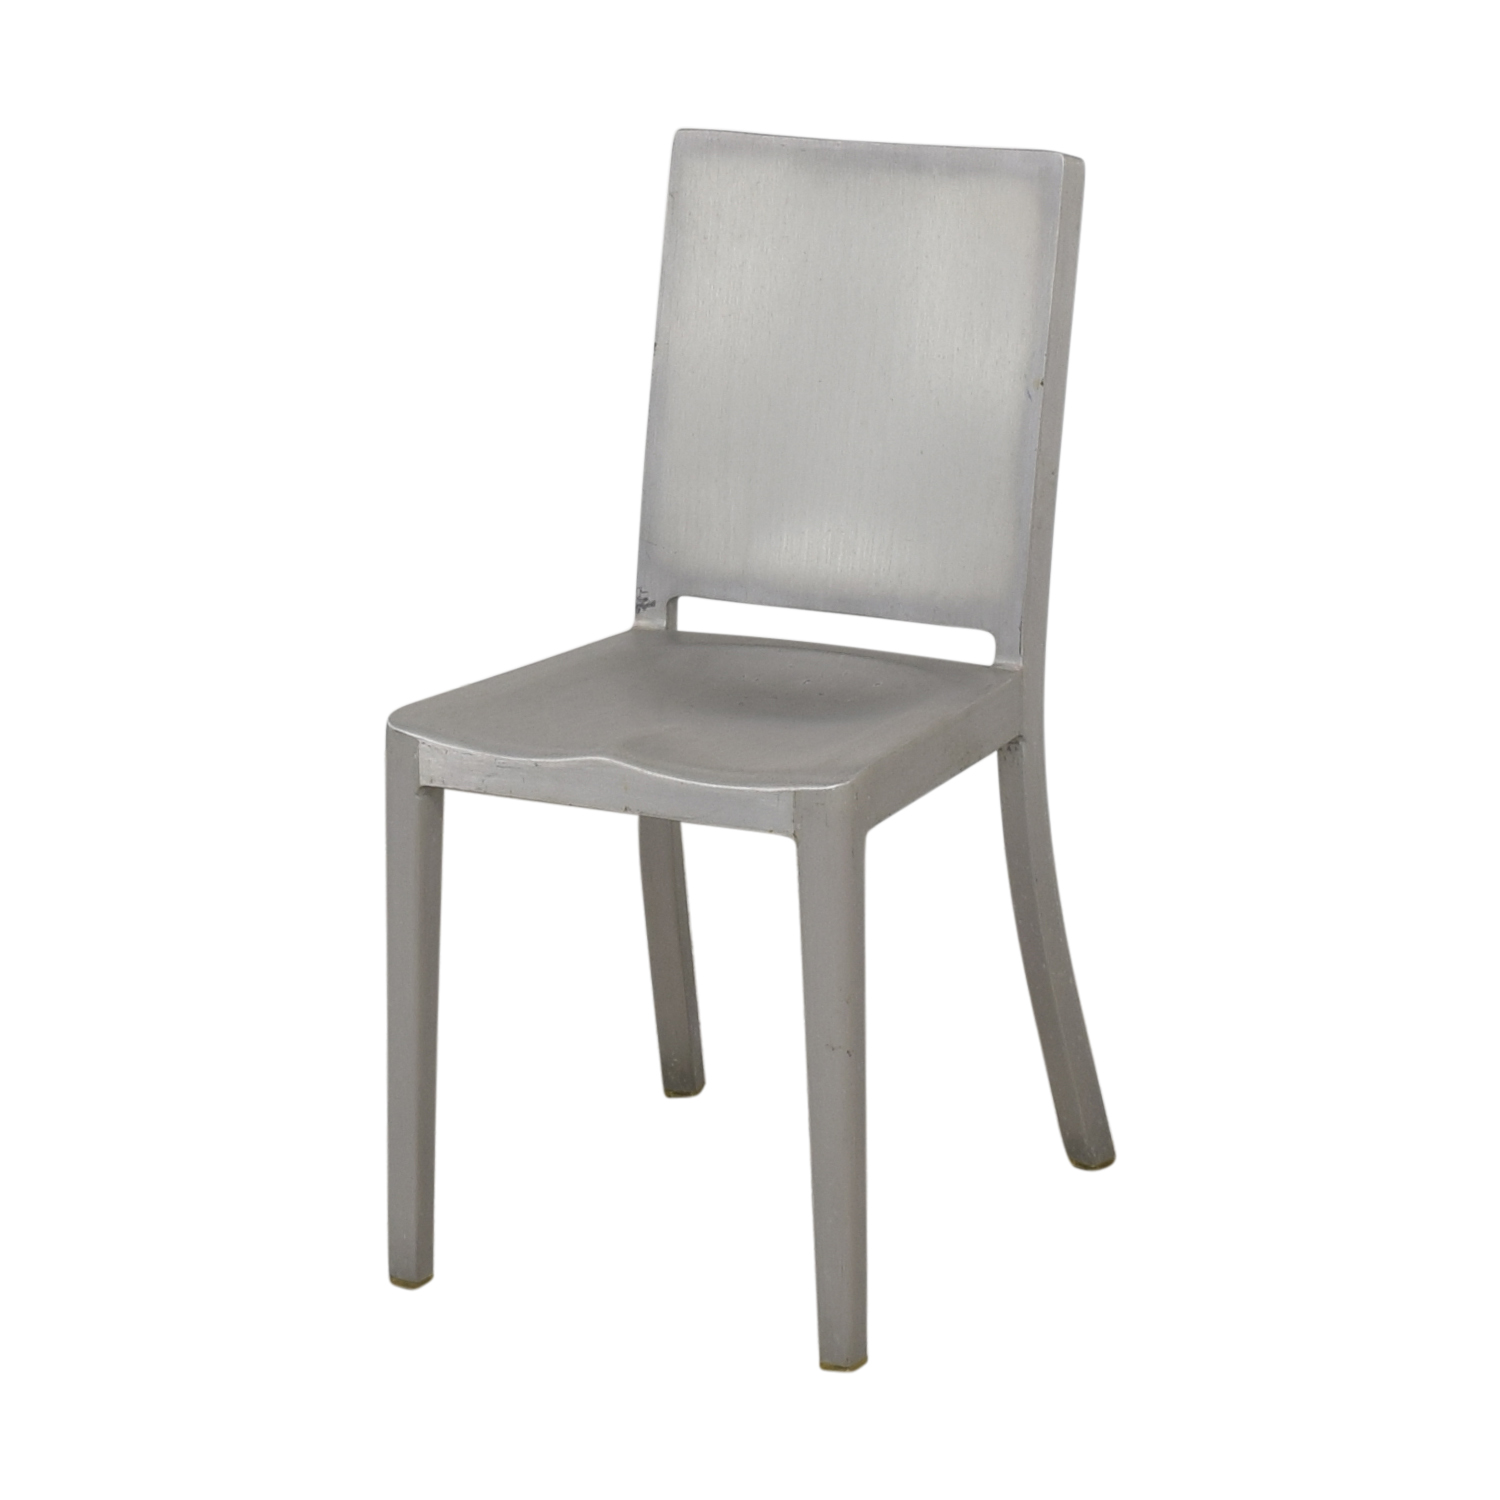 Emeco Emeco by Philippe Starck Hudson Chairs on sale